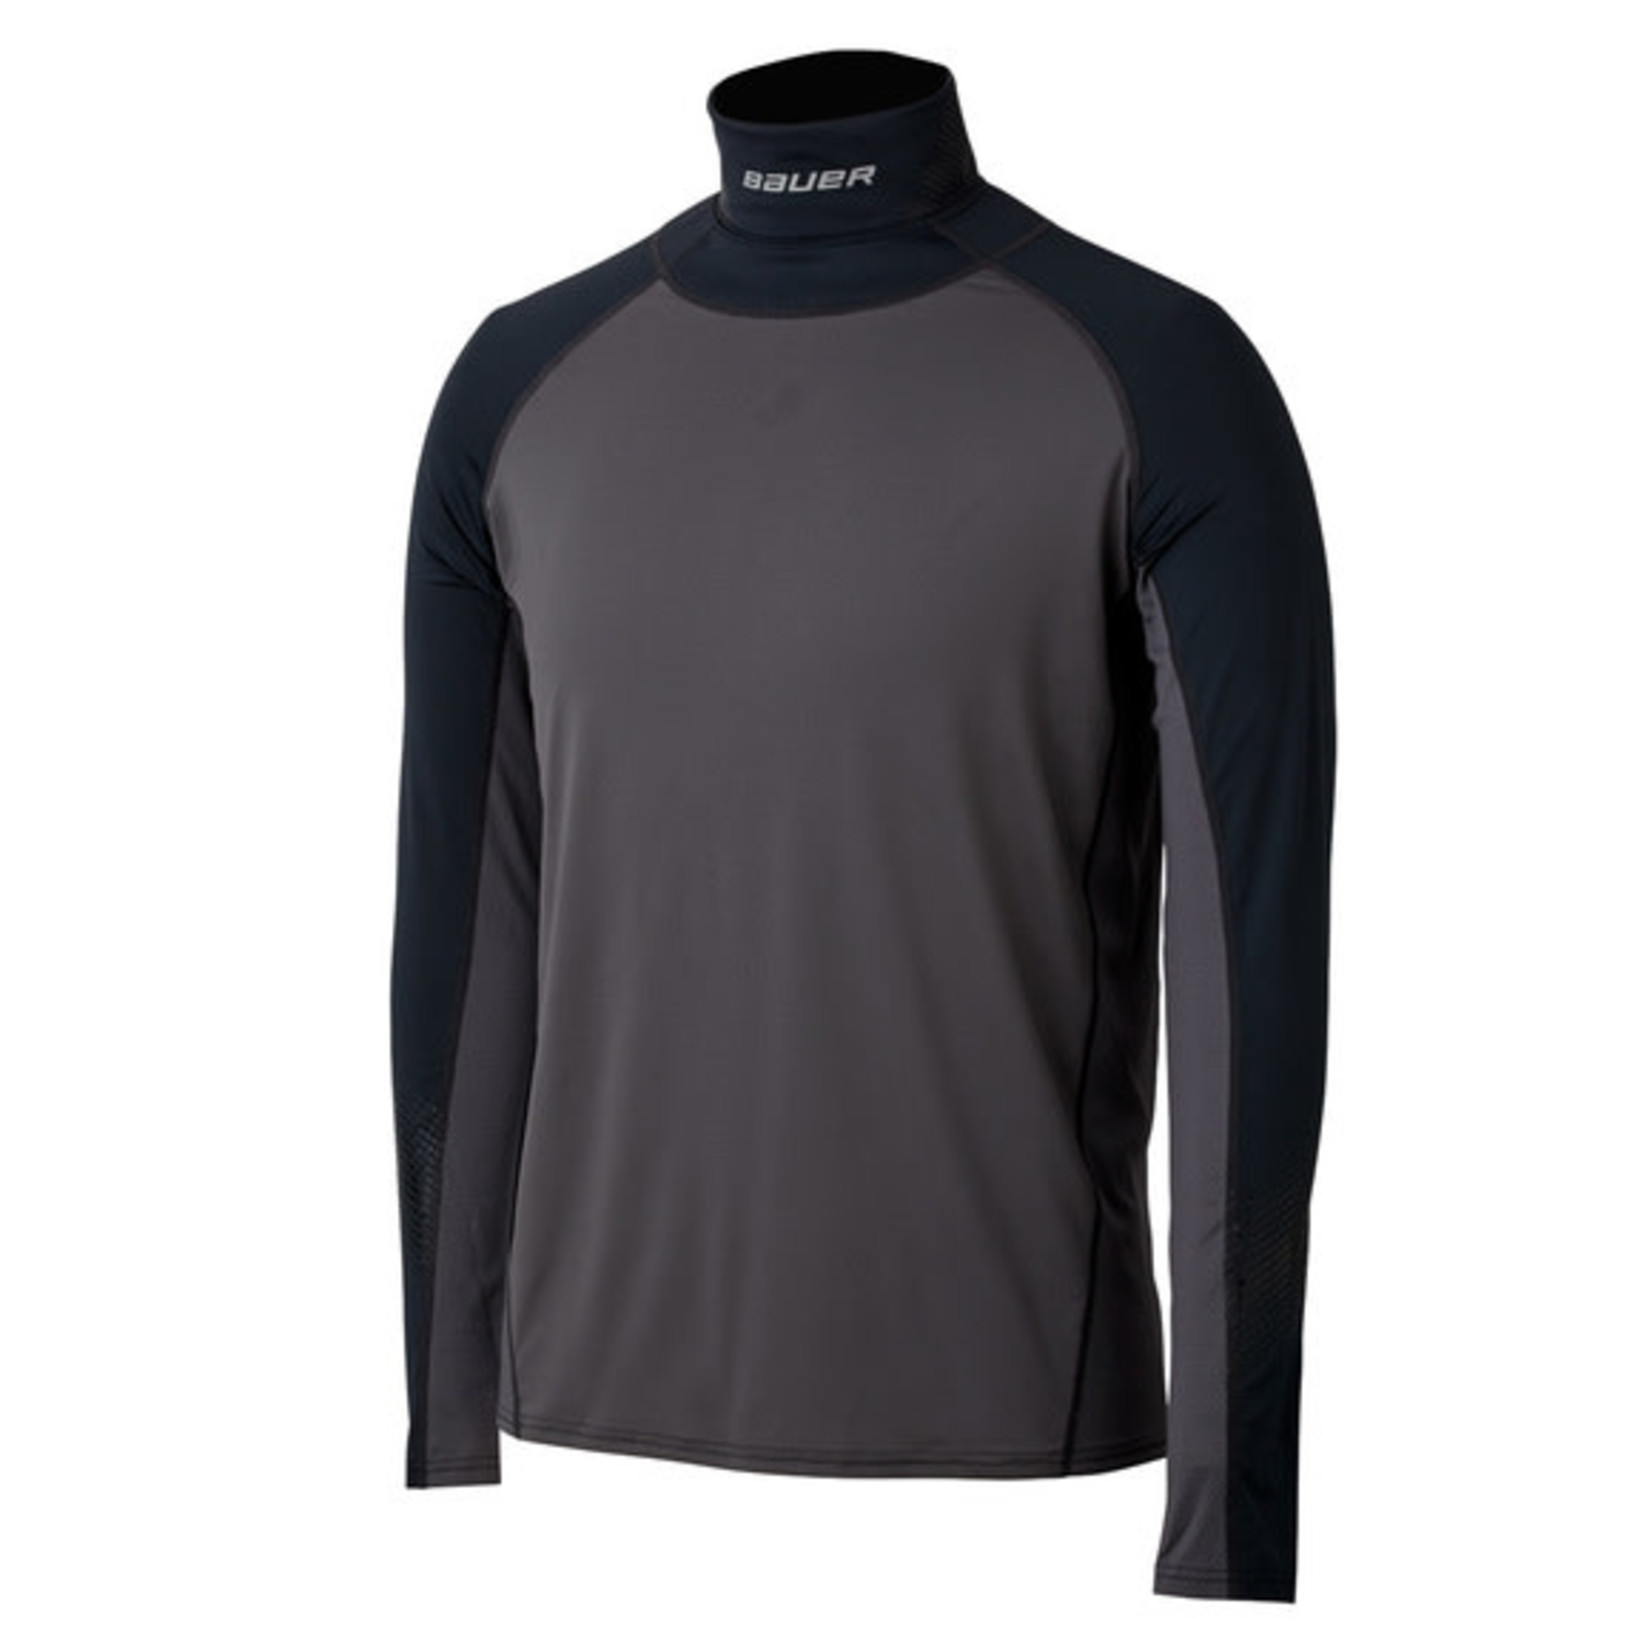 Bauer Bauer Long Sleeve Integrated NeckProtect Top, Senior